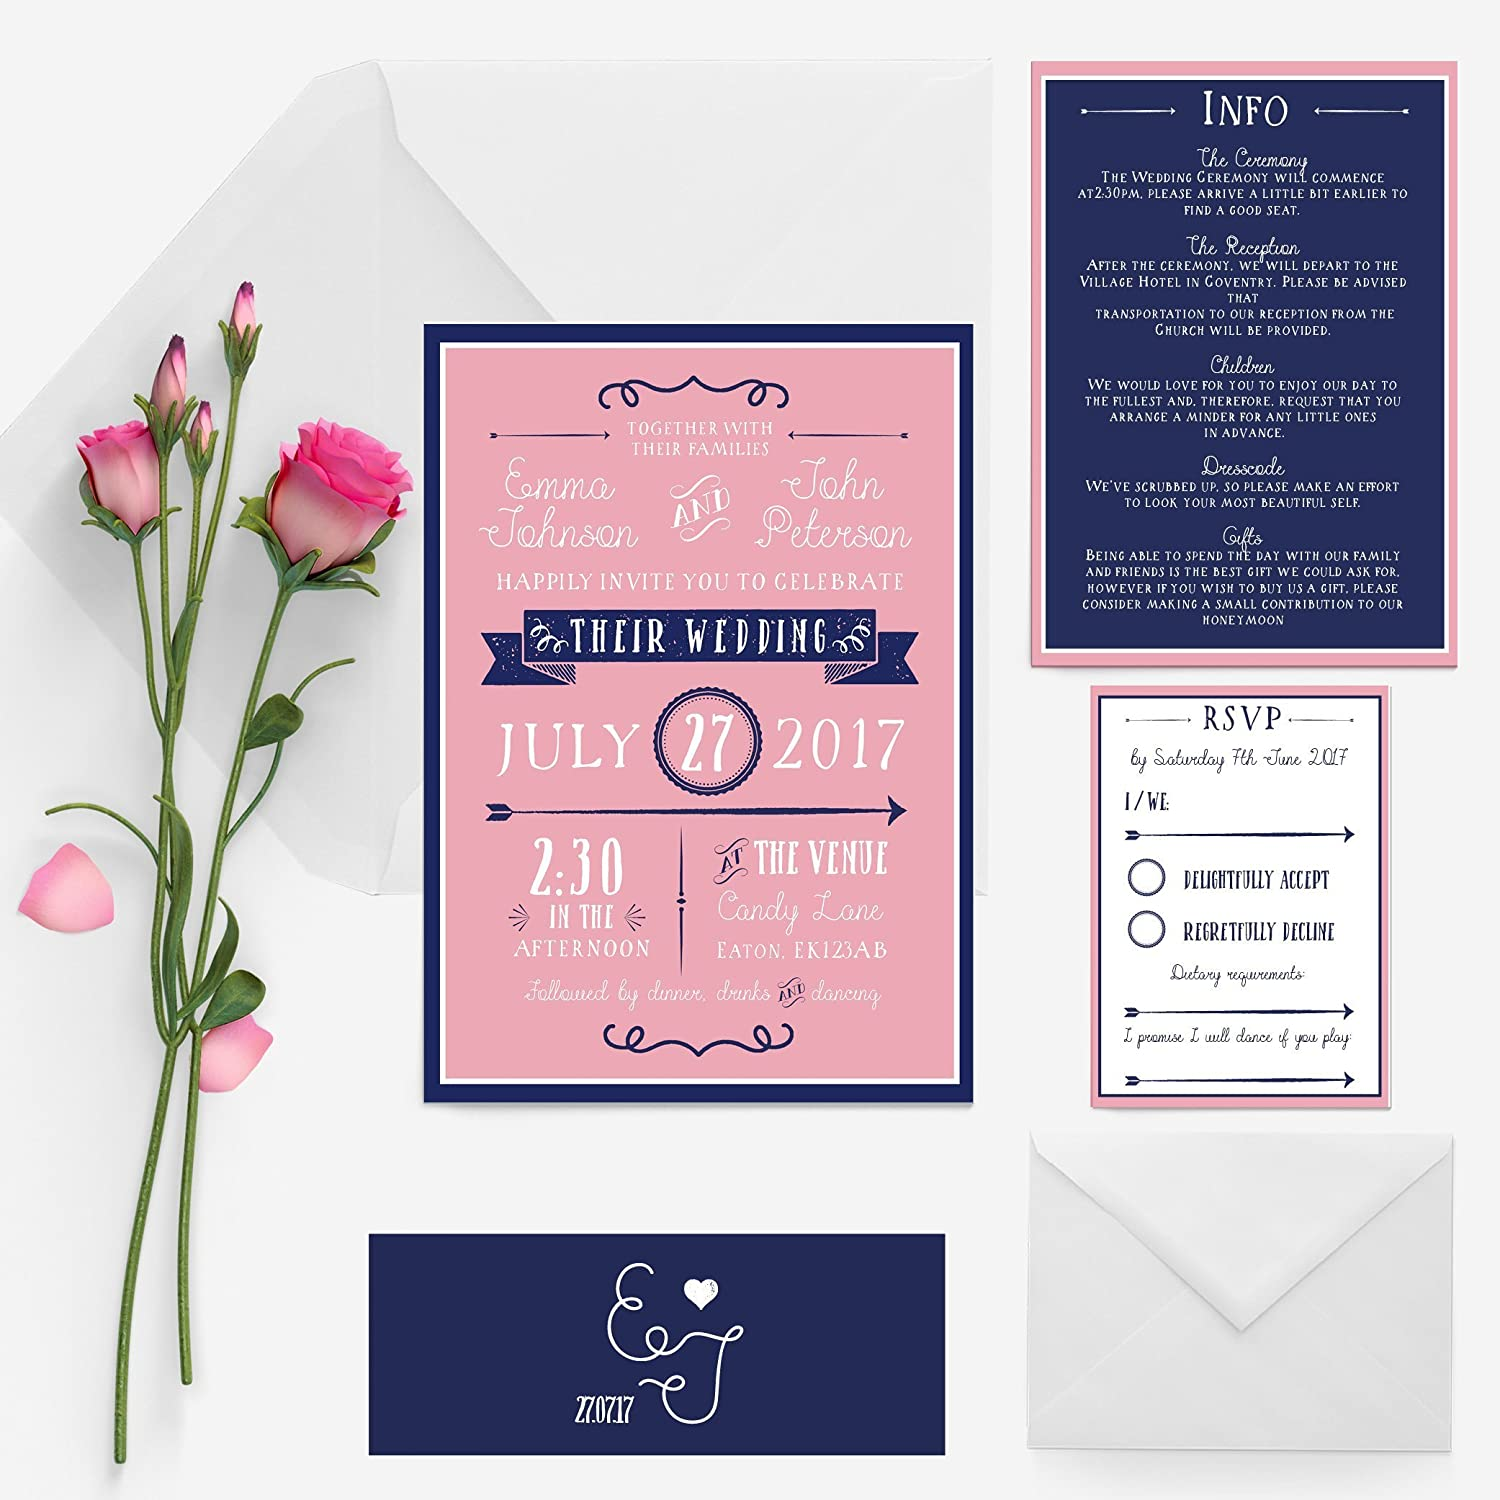 Blush pink and navy blue festival ornate wedding invitation package ...